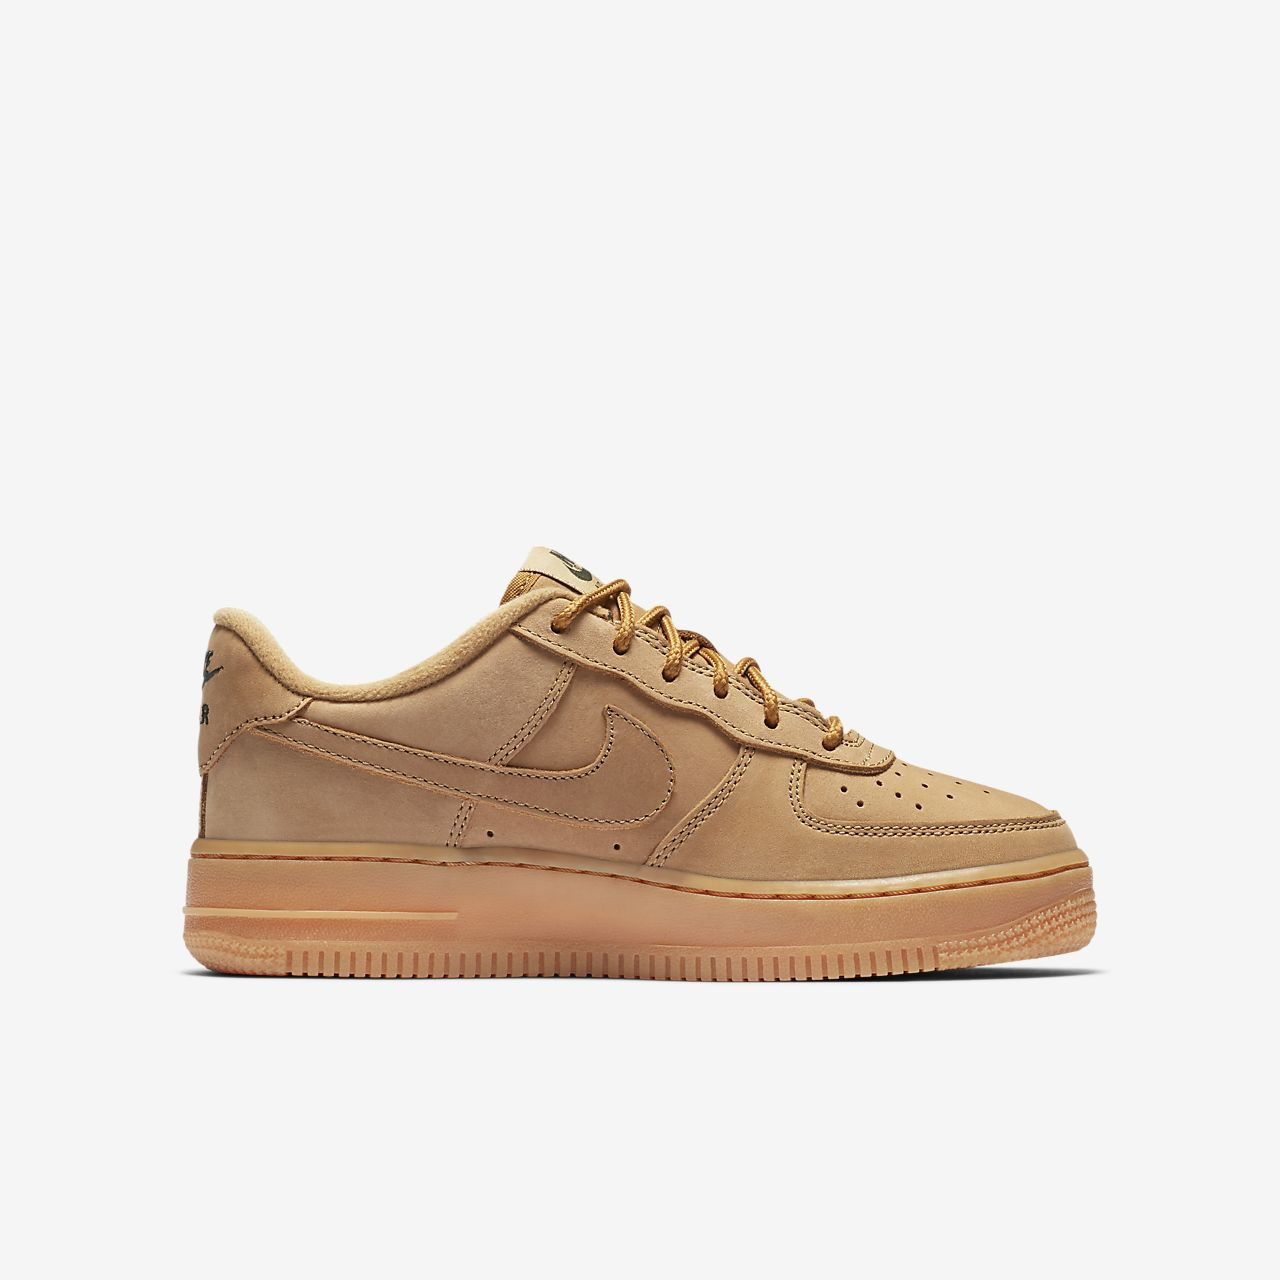 air force 1 gum bottom nz